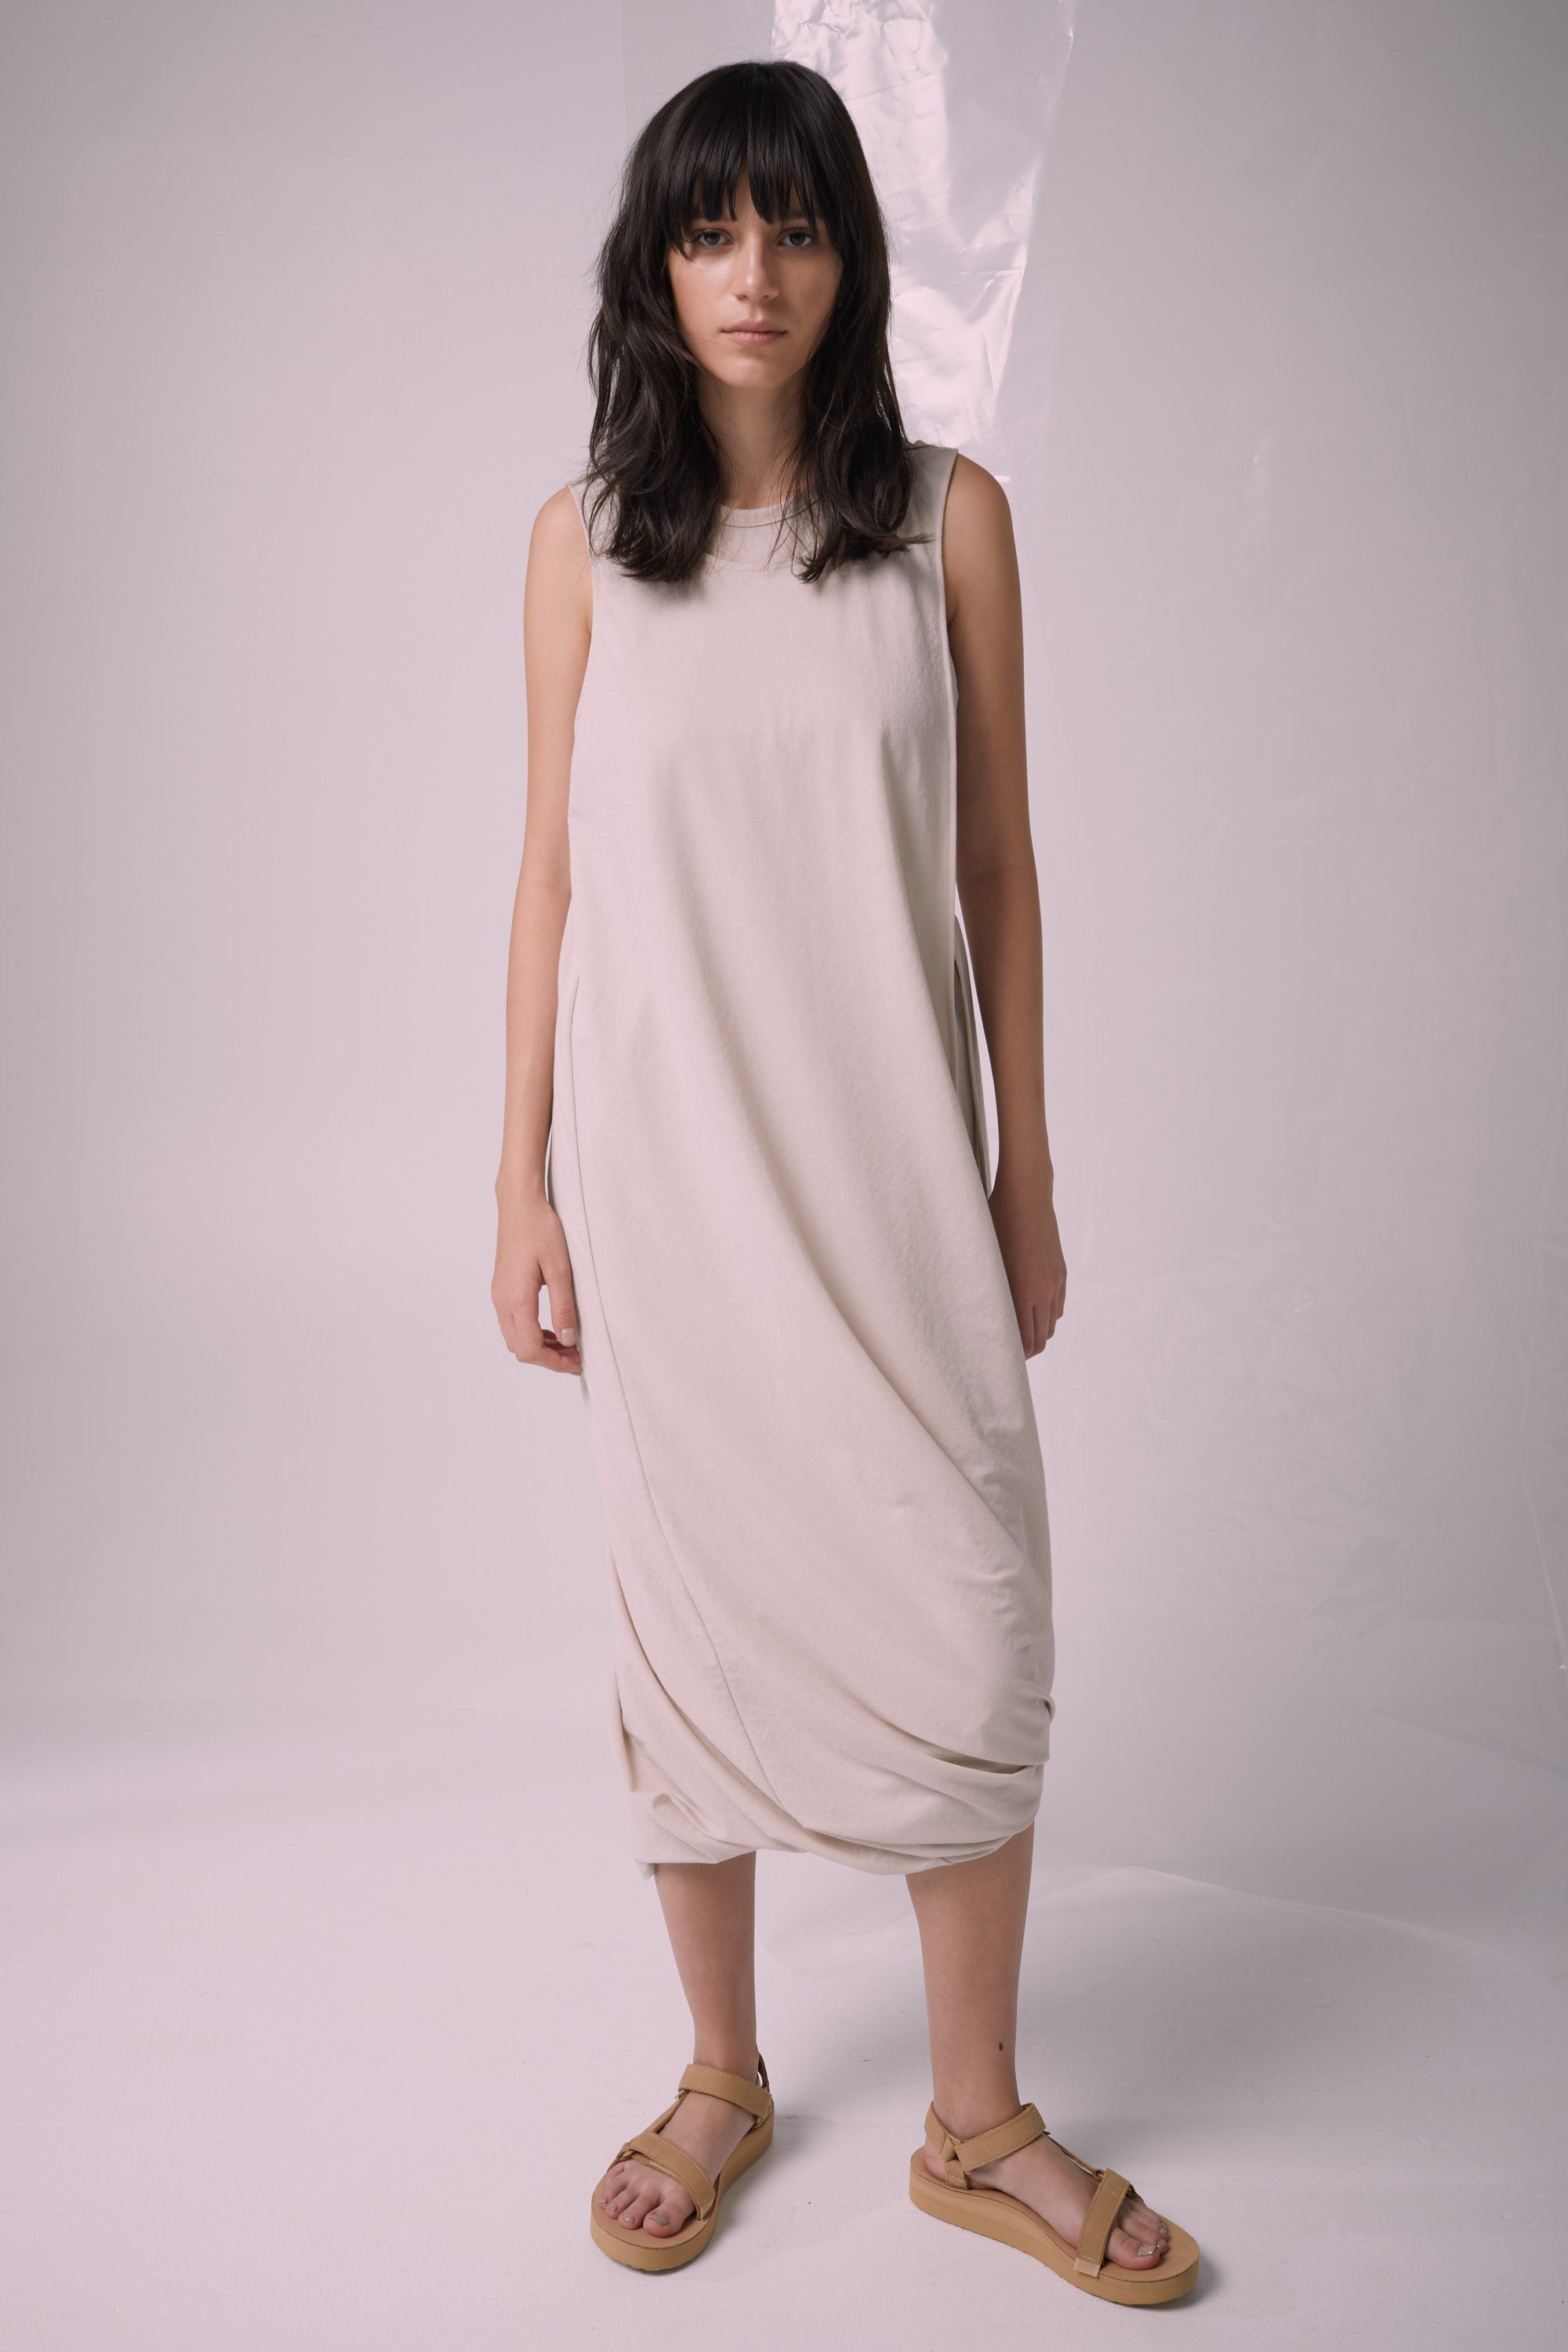 Ricochet NZ Fashion Designer Clothing Boutique SS19  Made in NZ Cuban Slide Dress Stone